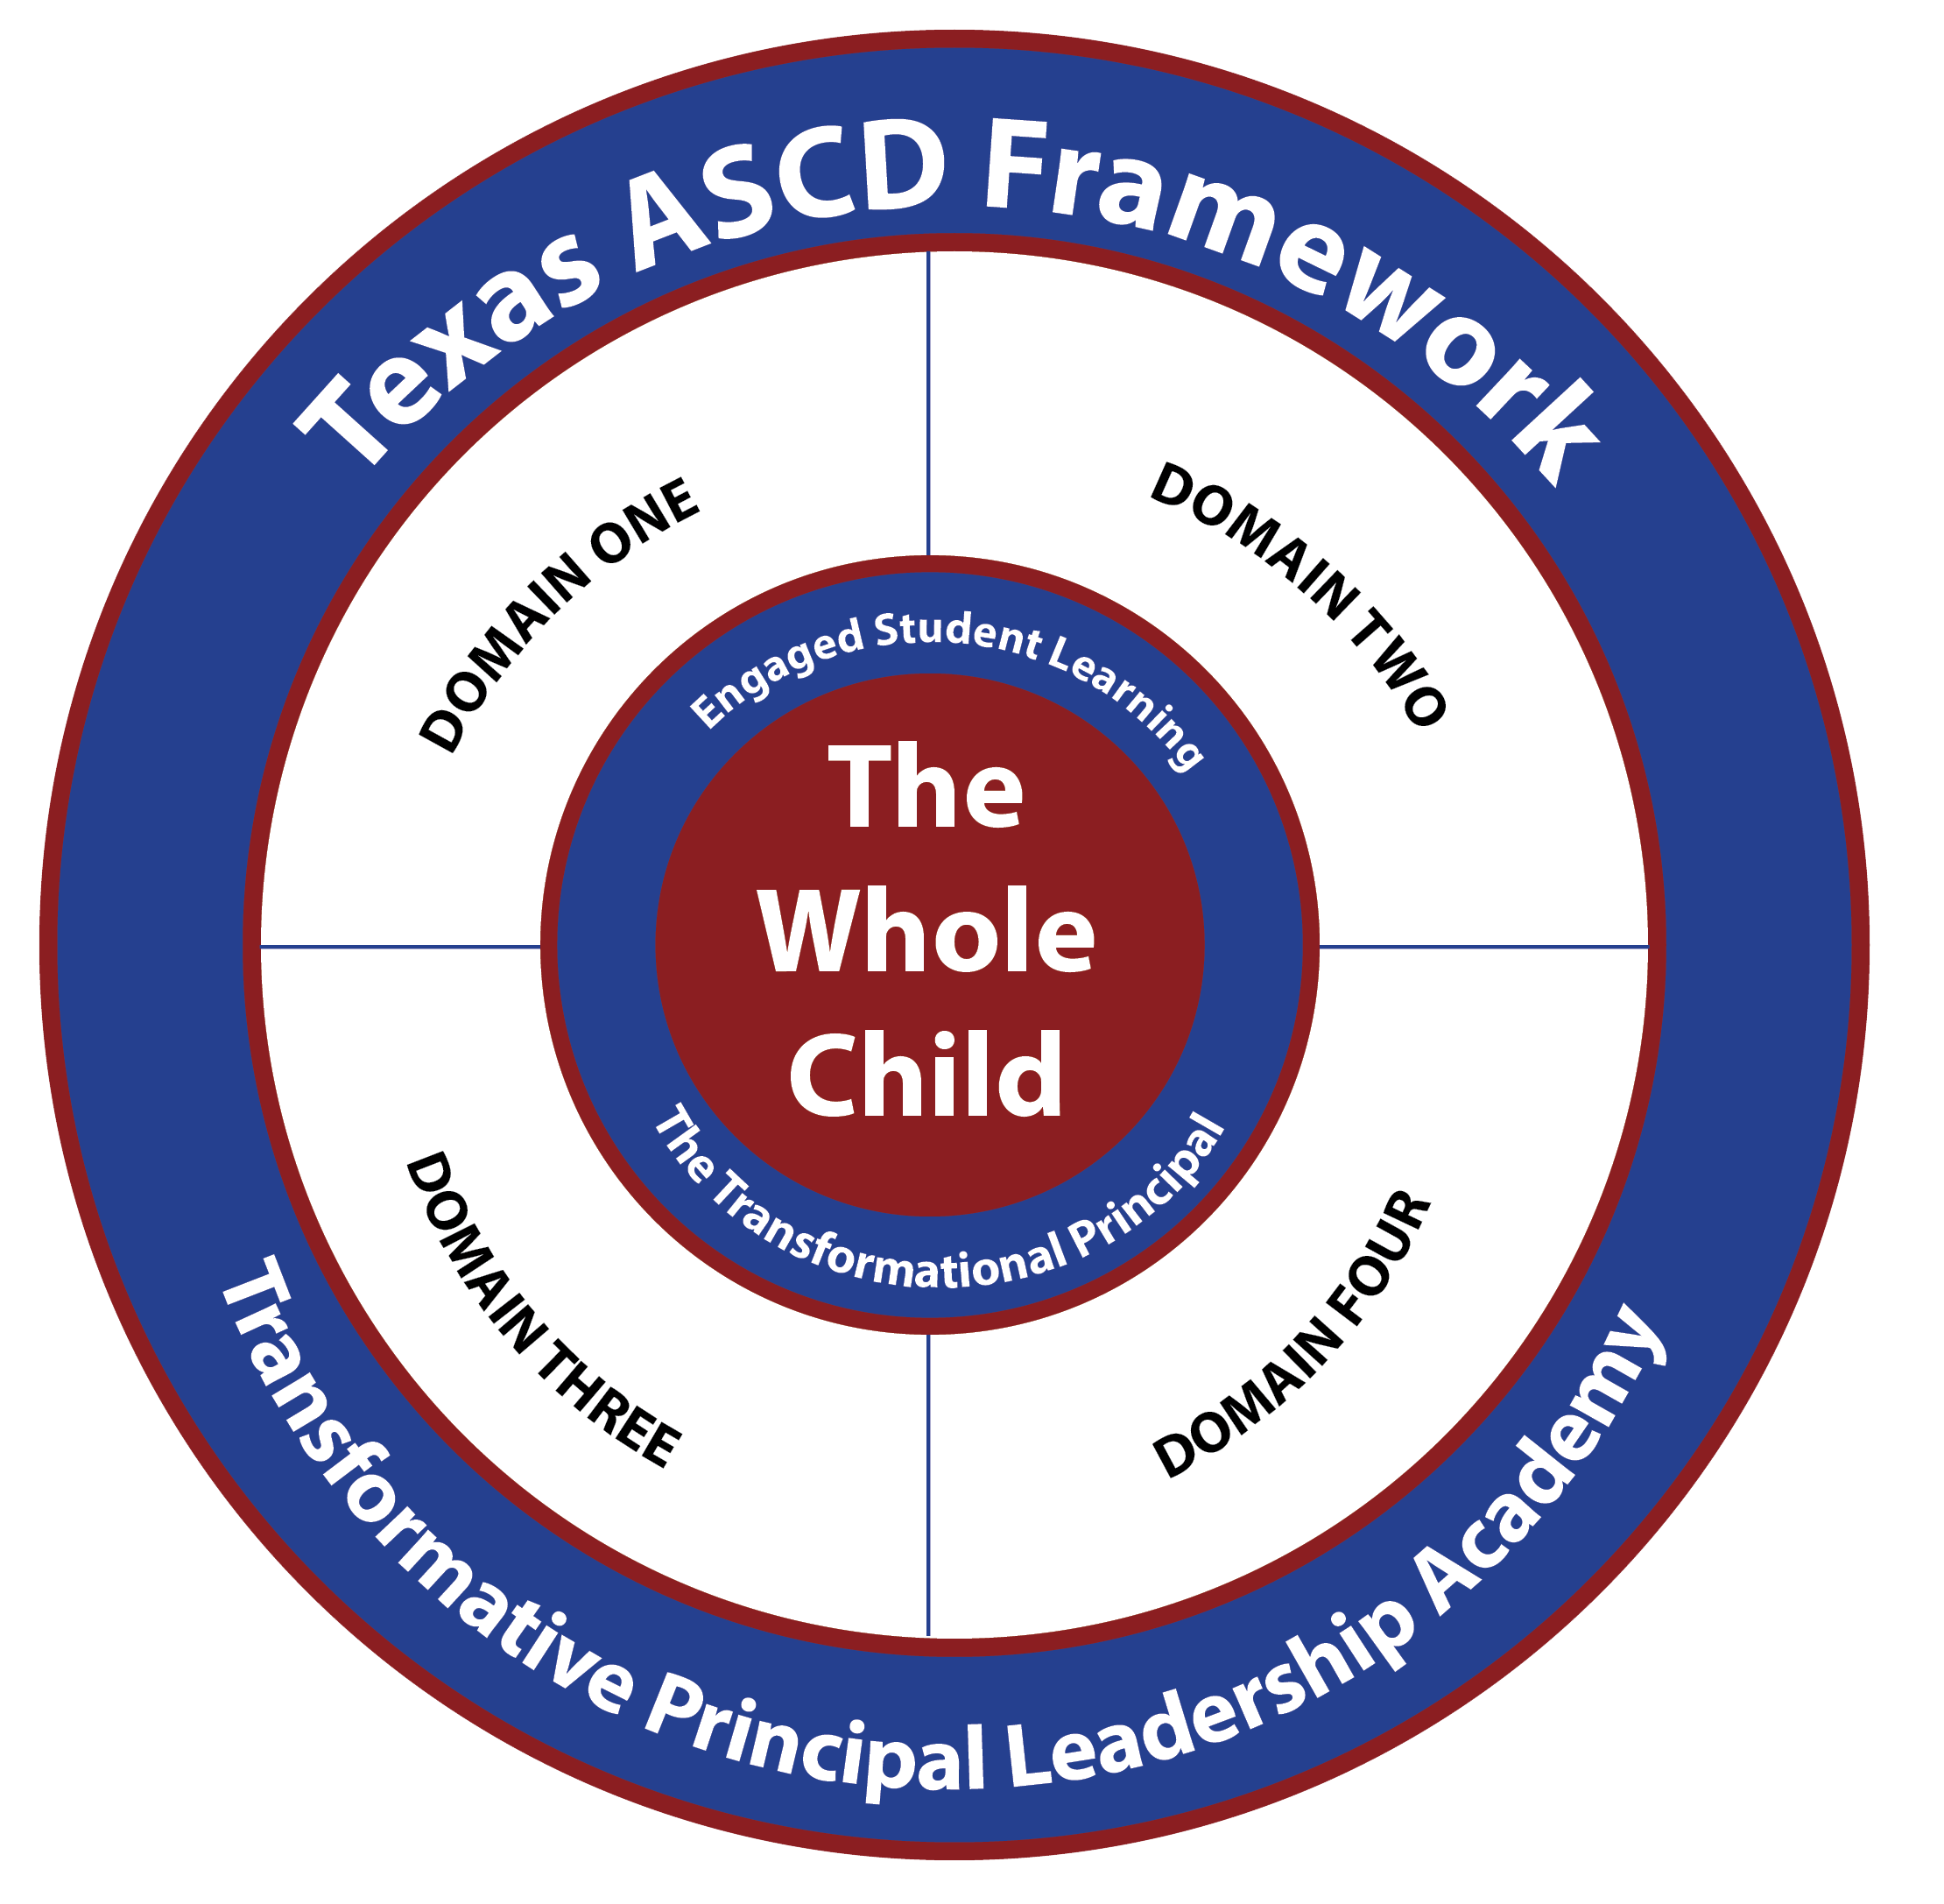 Transformative Principal Leadership Academy